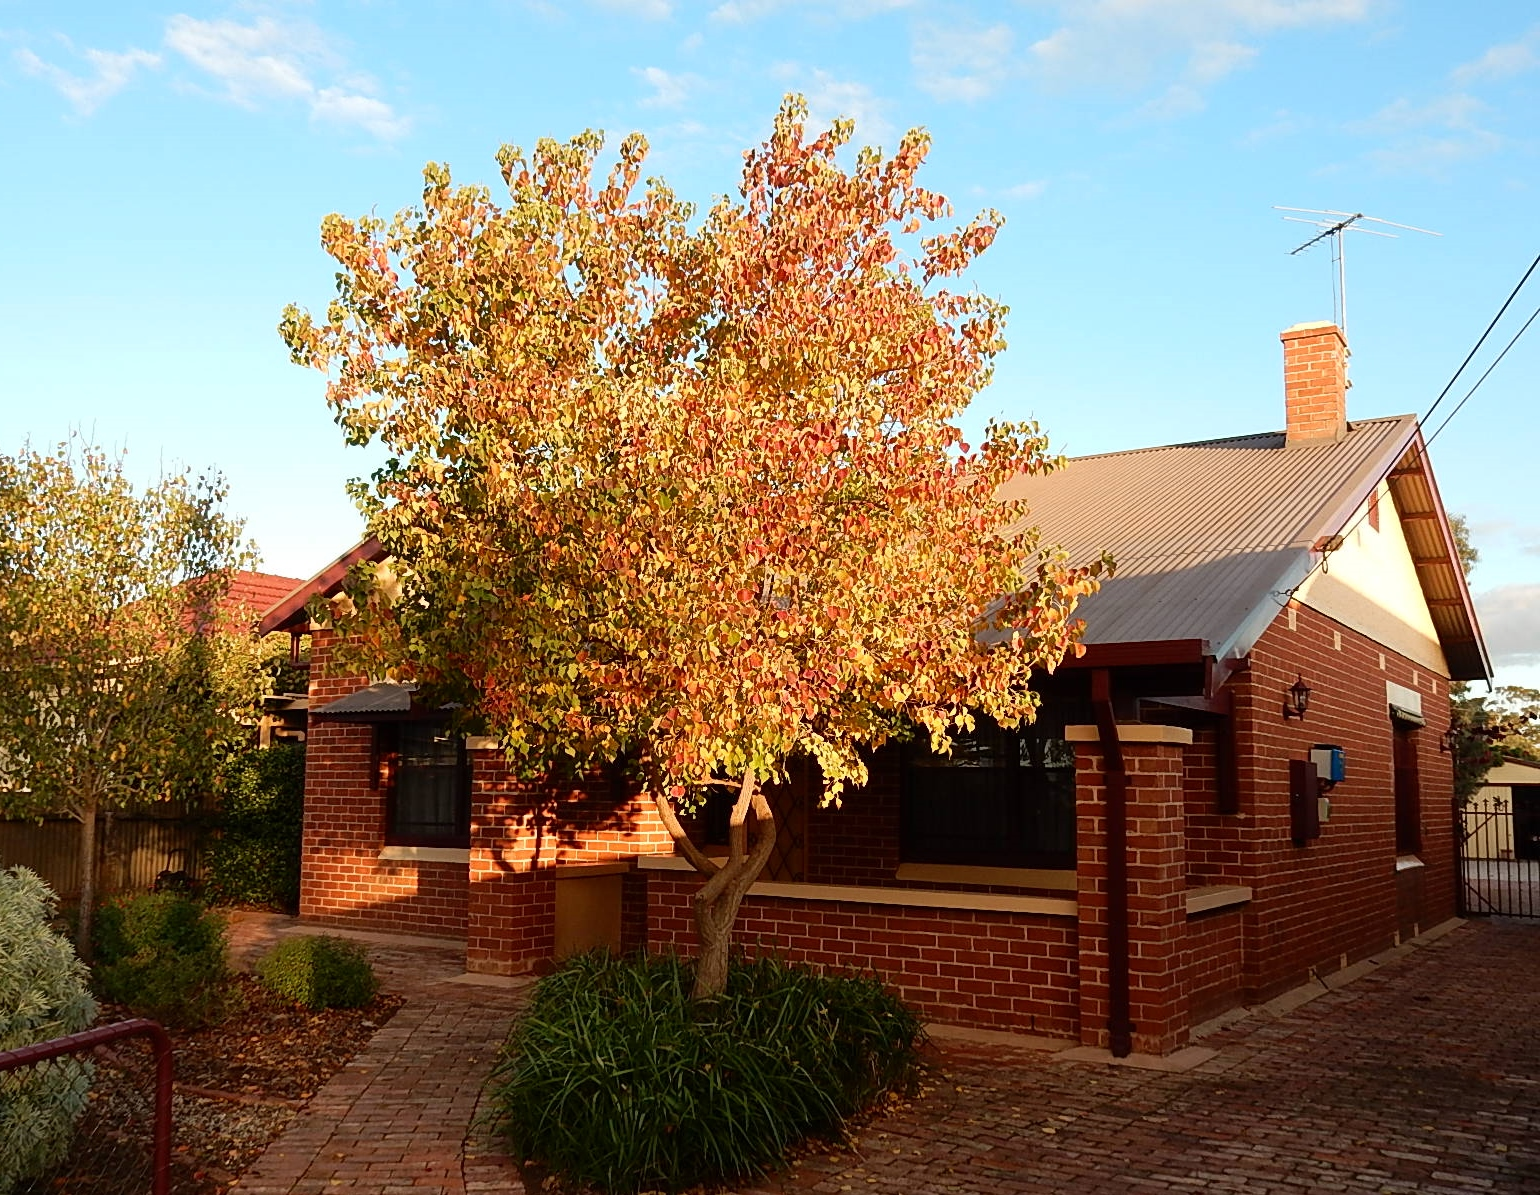 FileRed Brick Bungalow In Beverley South Australia